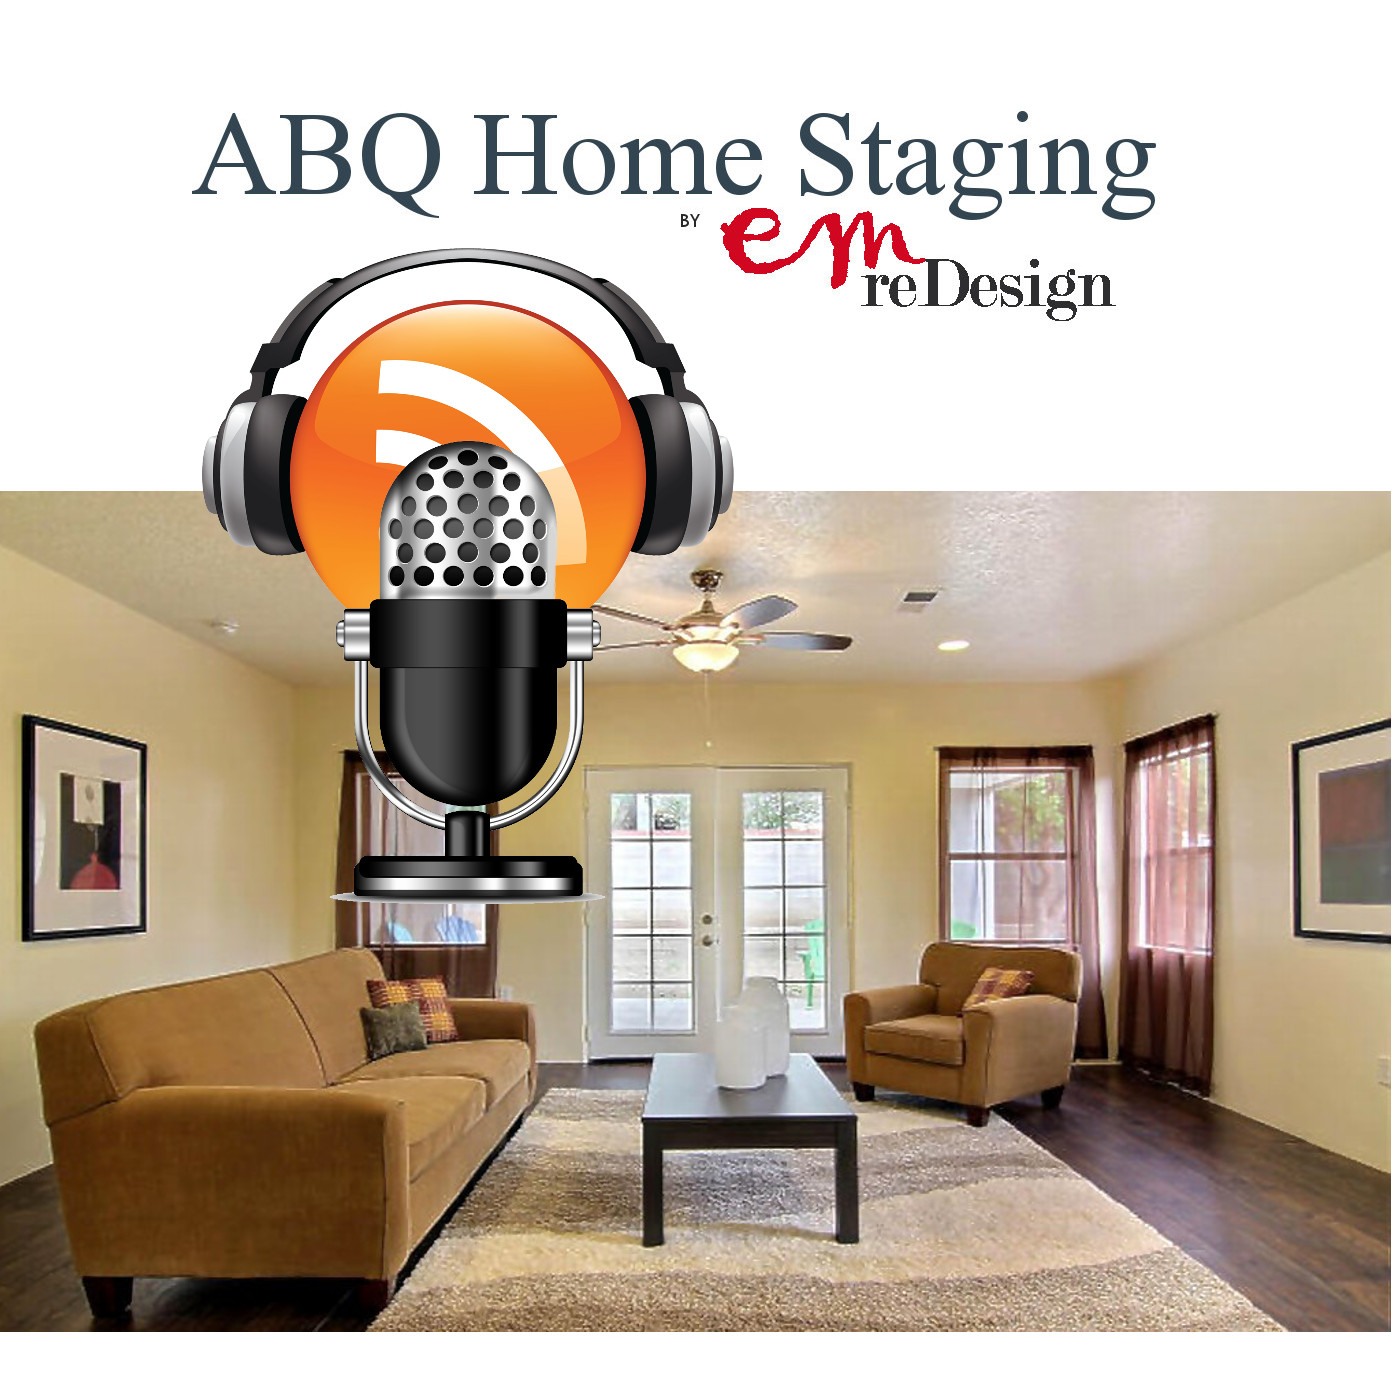 ABQ Home Staging Podcast